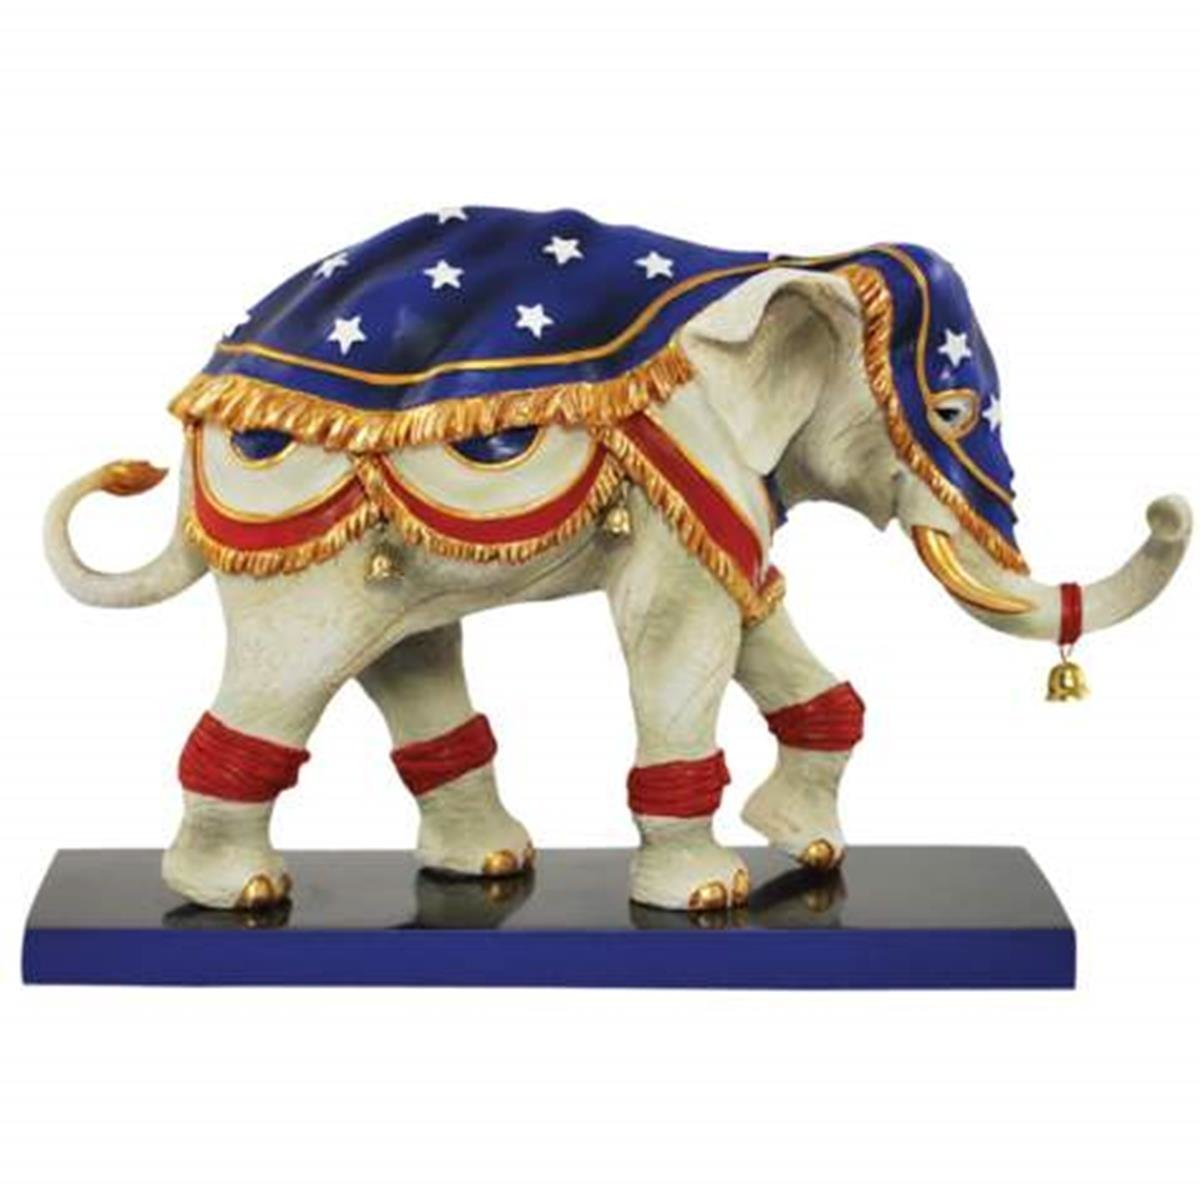 5 Inch Liberty Bell Decorated Elephant Collectible Figurine Statue 5 WL SS-WL-13079